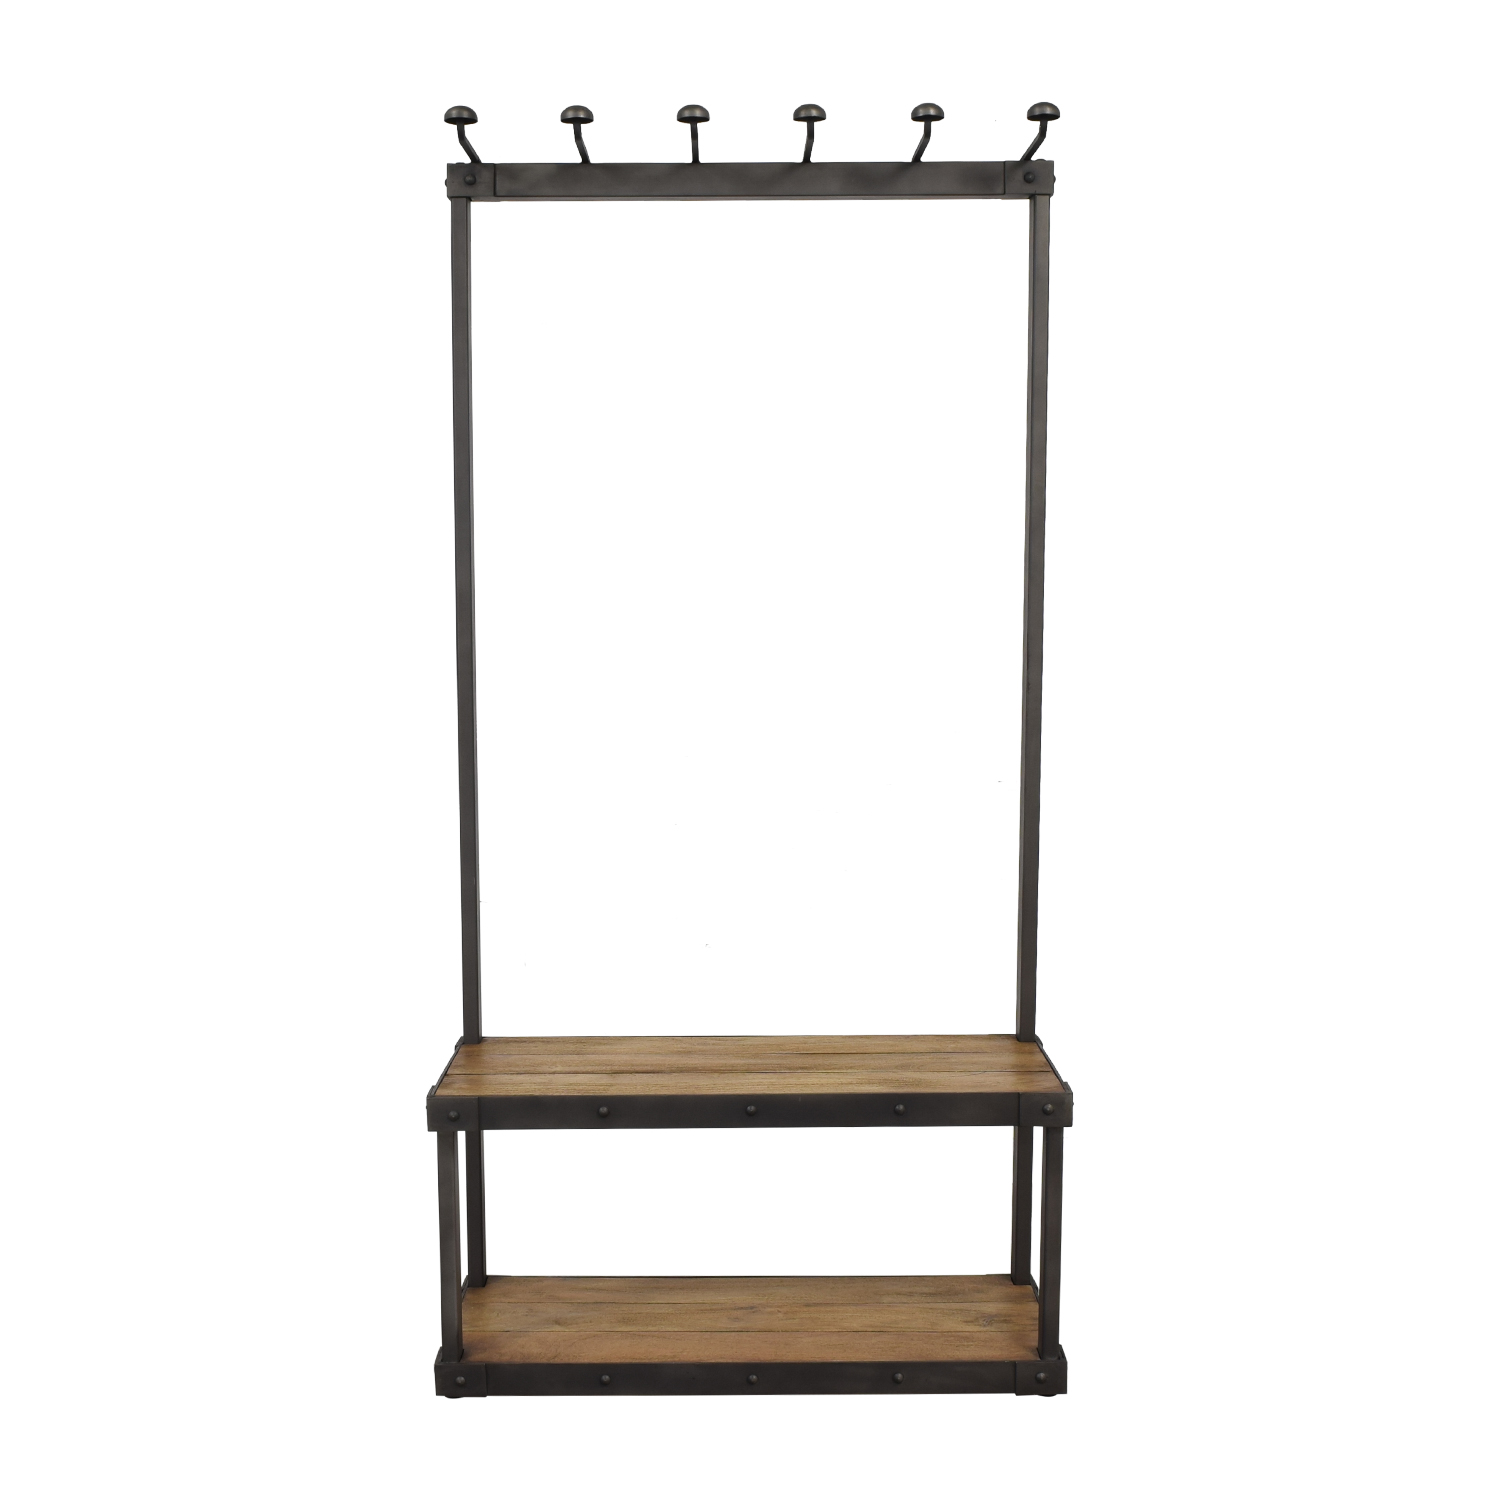 buy Restoration Hardware Coat Rack Bench Restoration Hardware